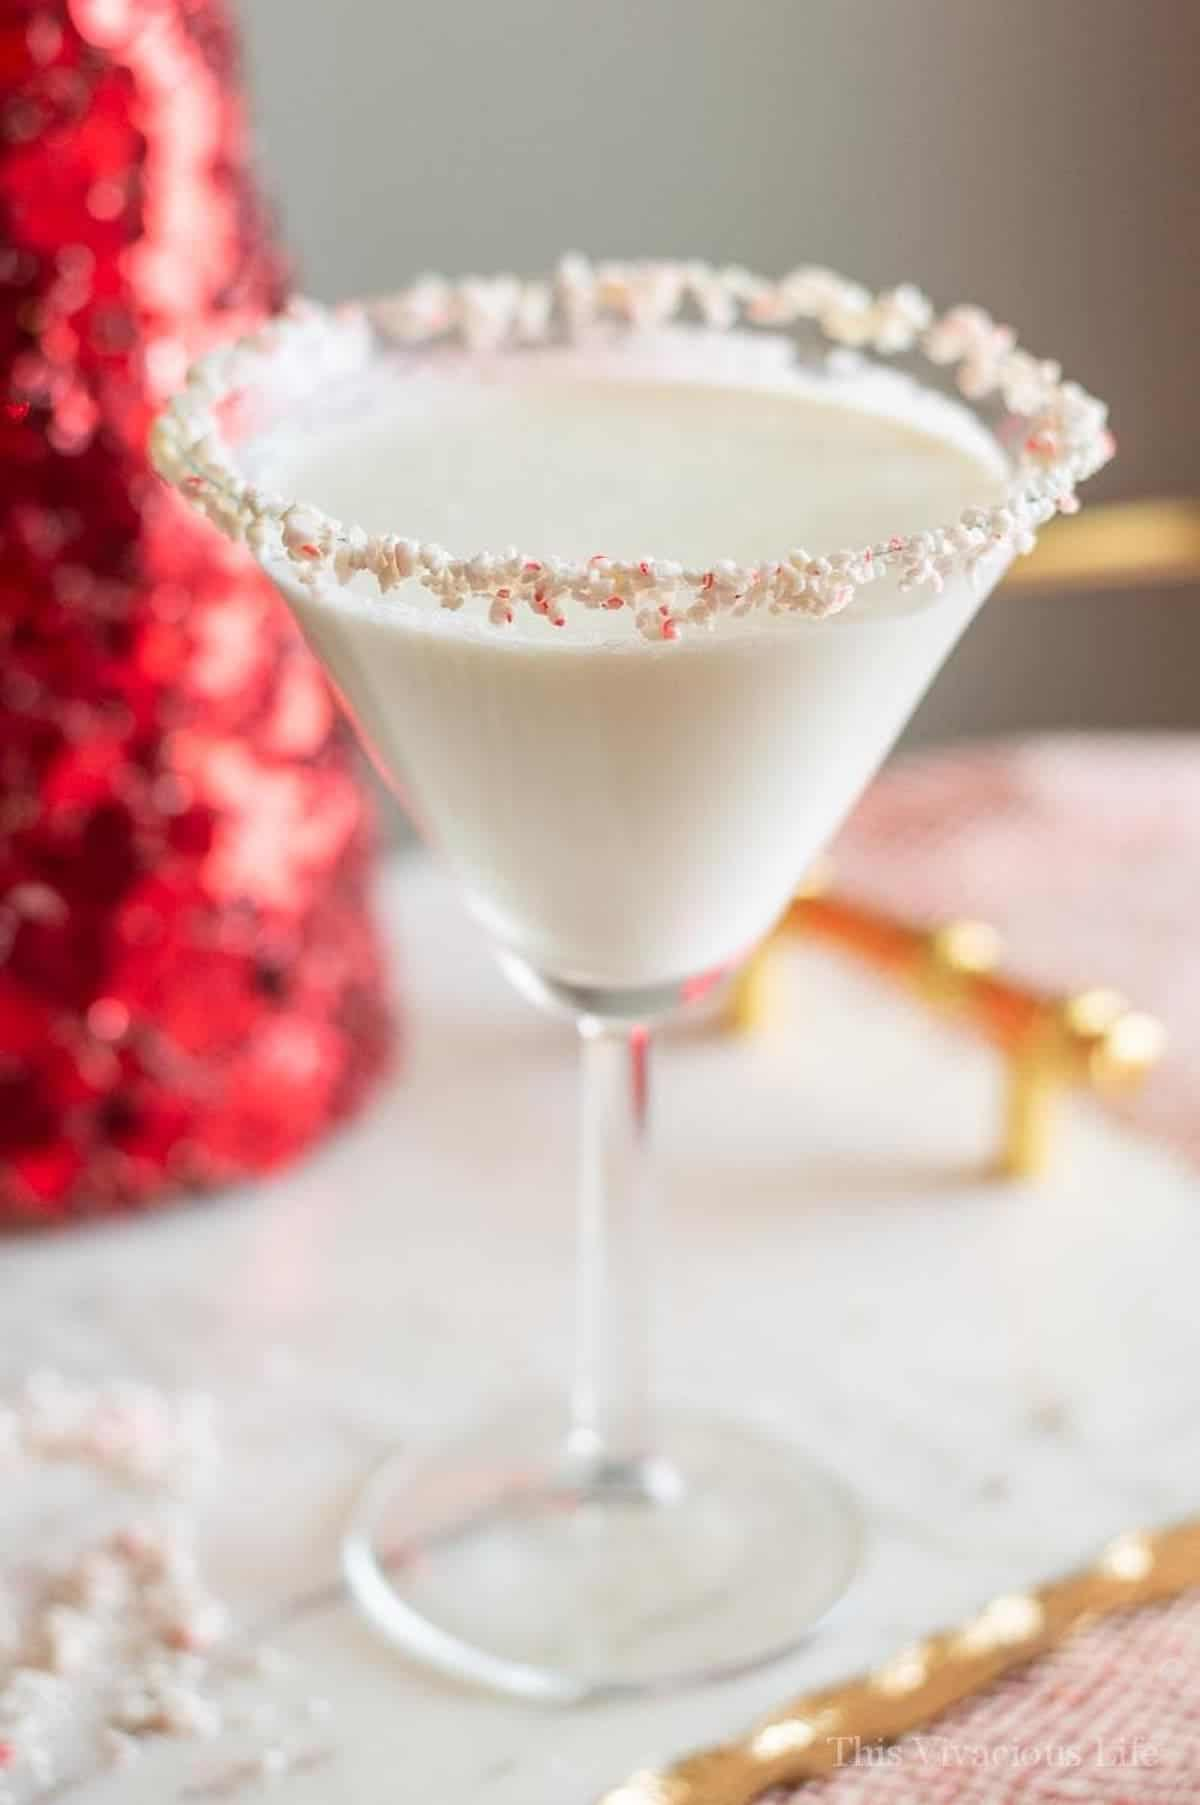 Our candy cane Christmas mocktails in a martini glass